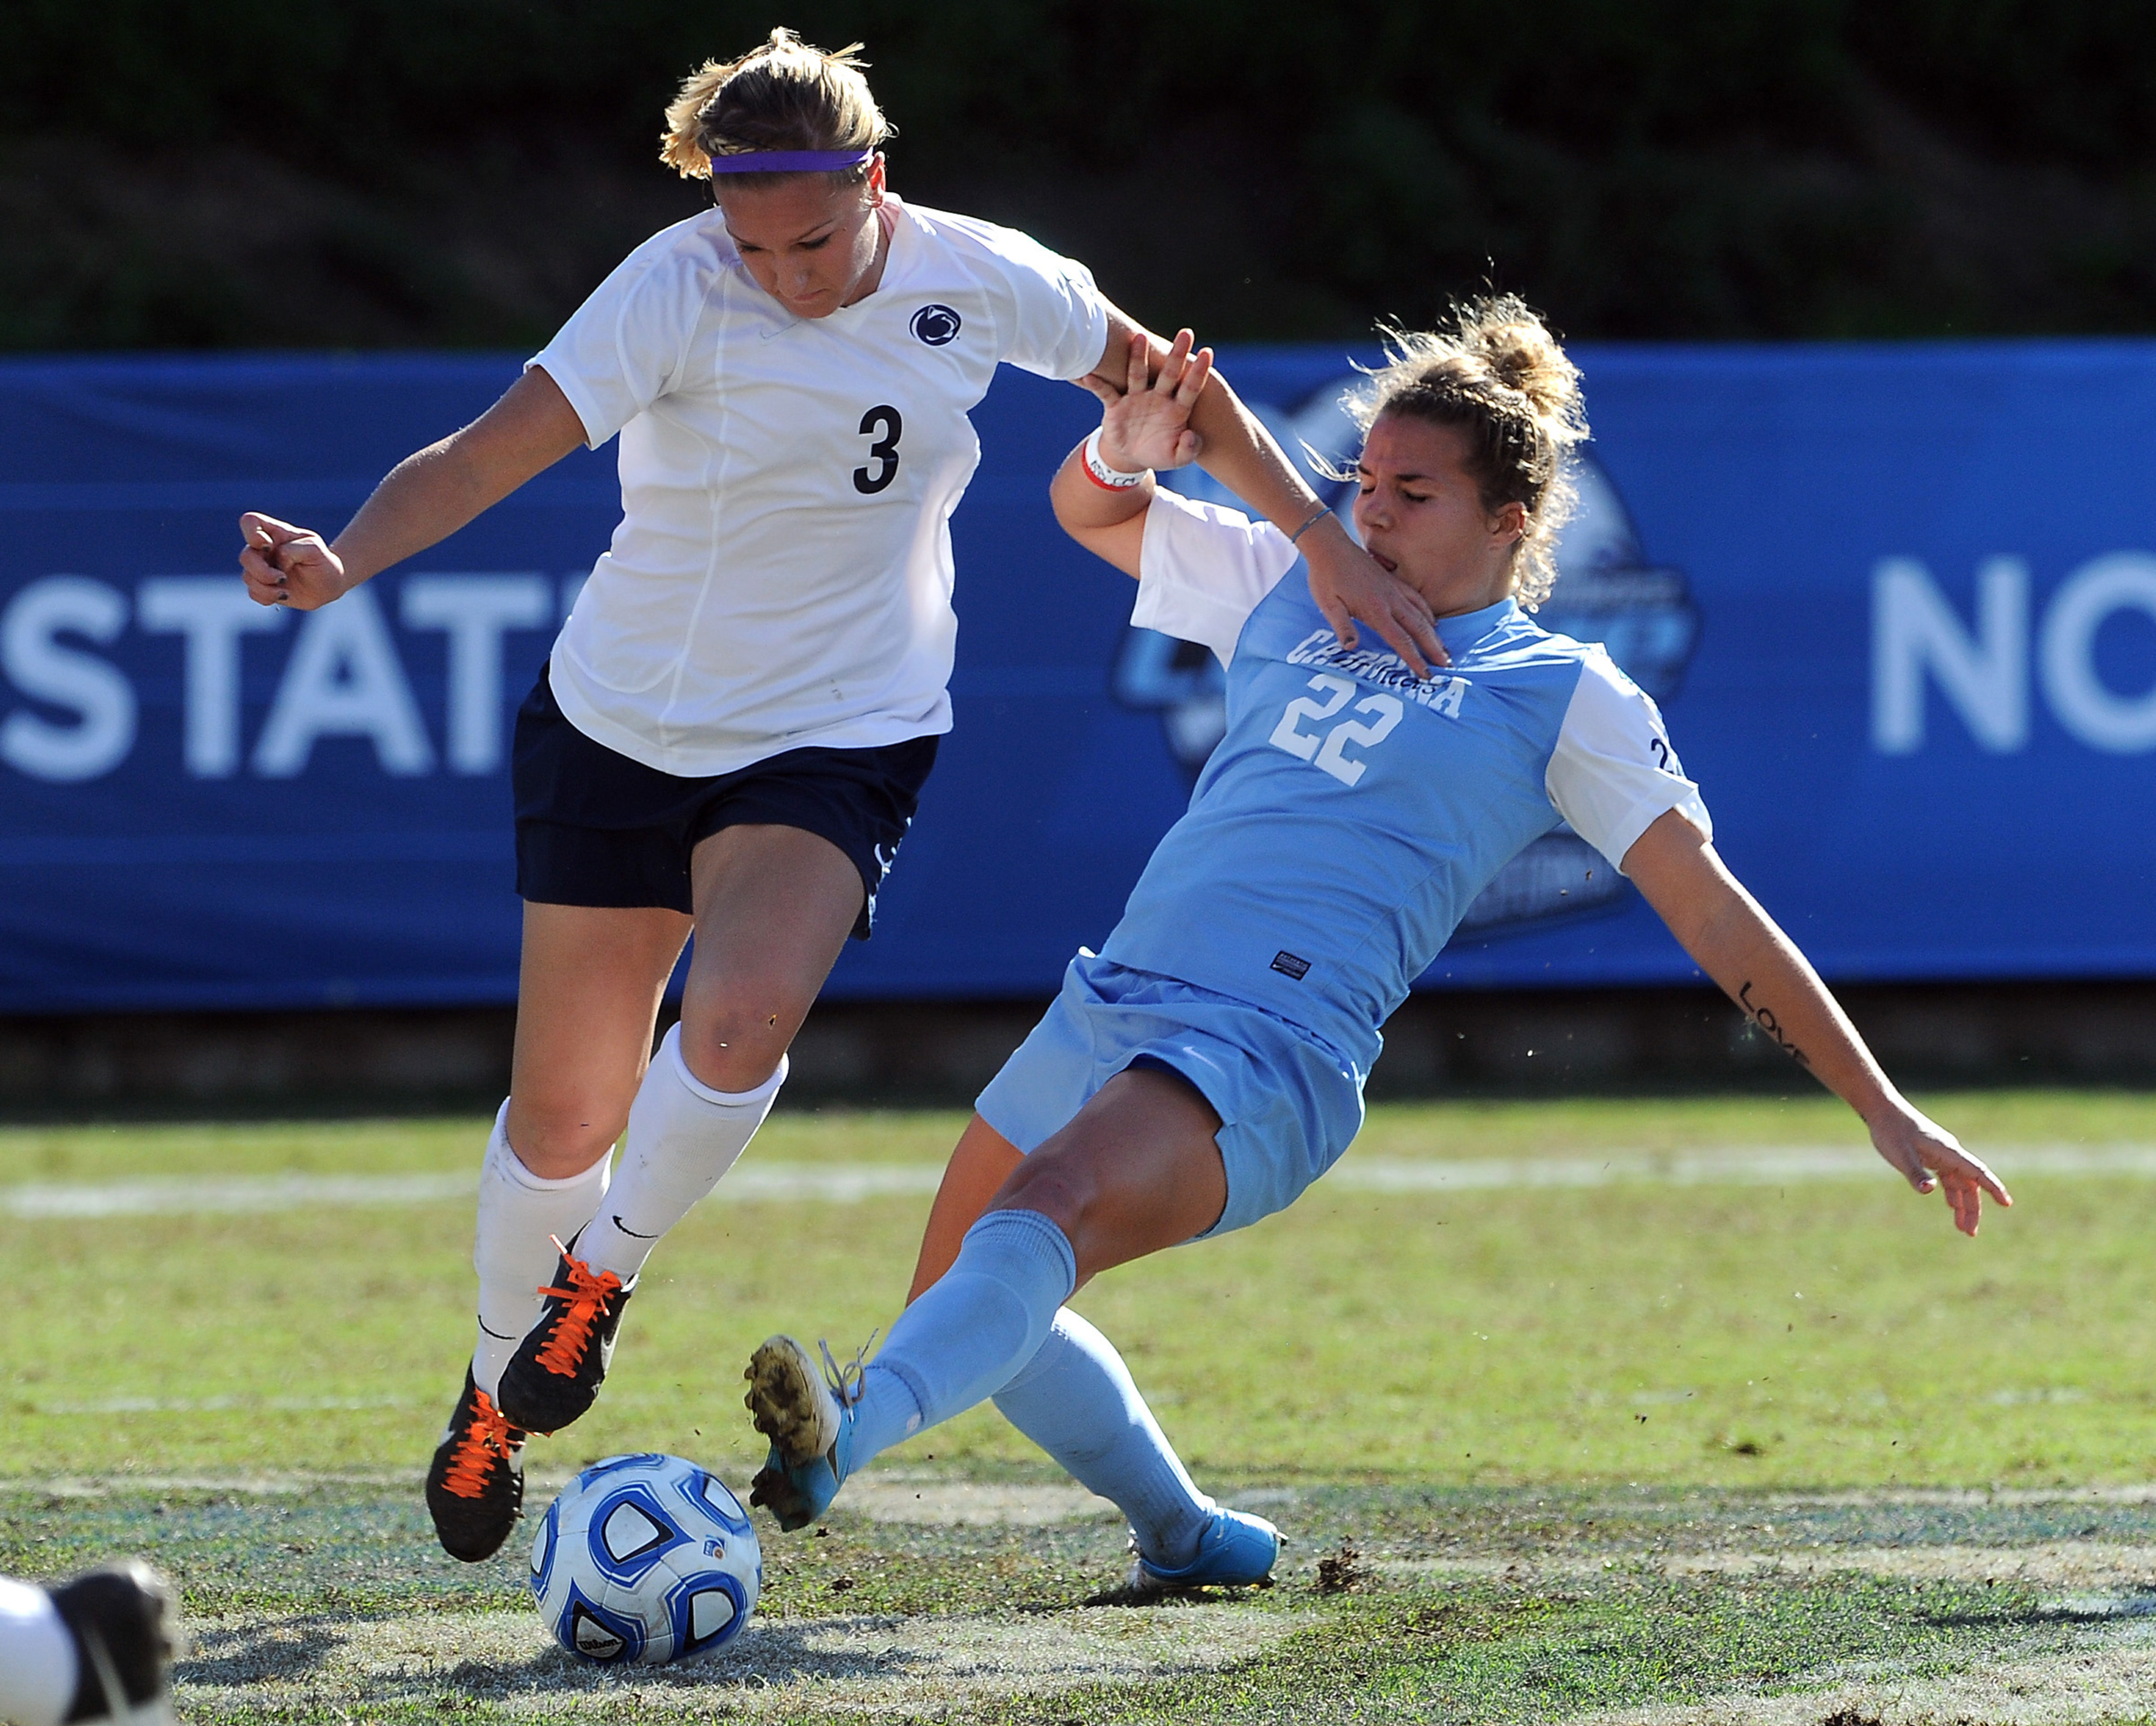 Midfielder Emily Hurd in last year's National Championship game. Like a boss.